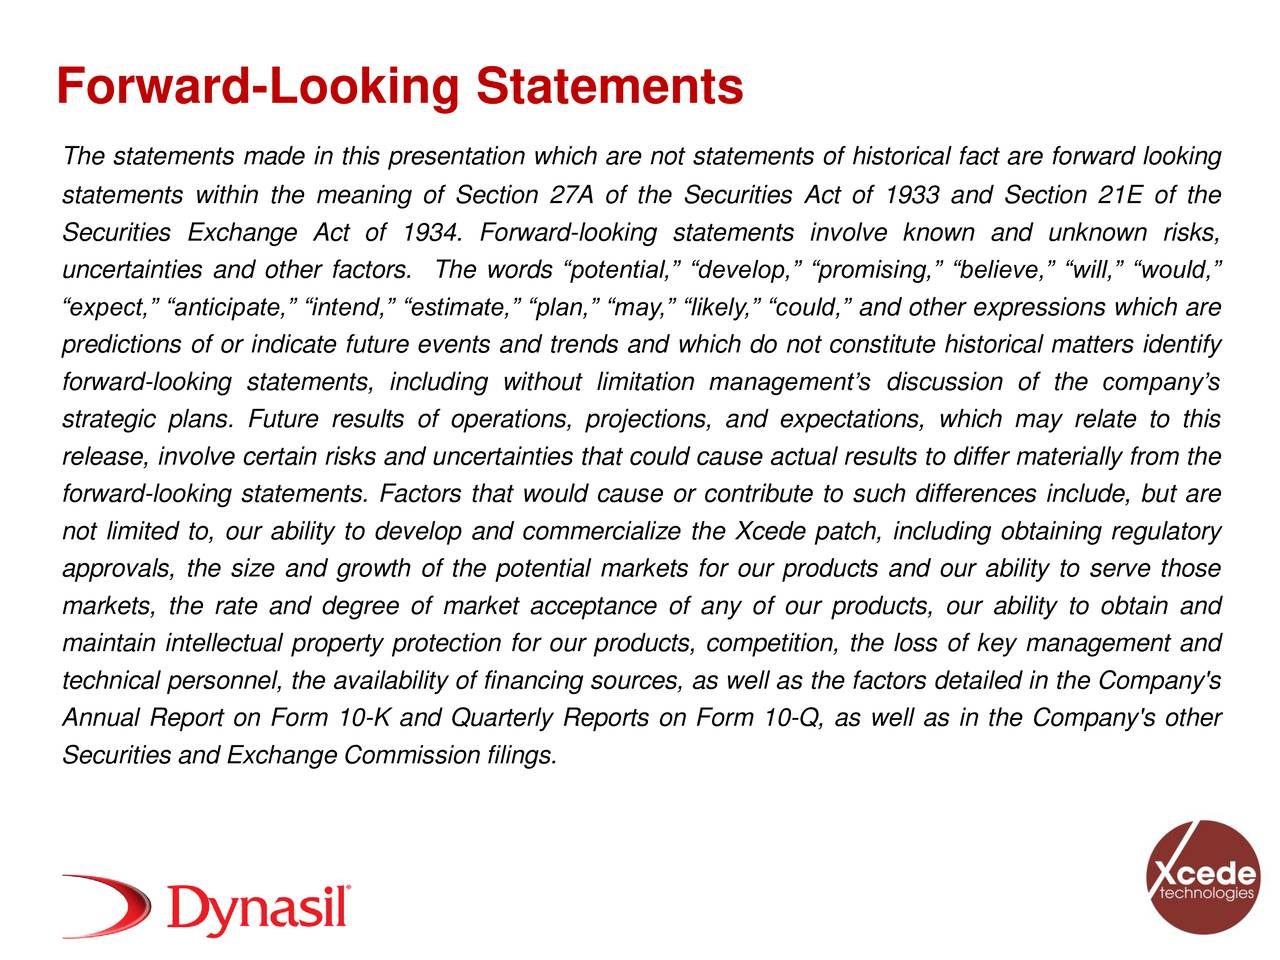 The statements made in this presentation which are not statements of historical fact are forward looking statements within the meaning of Section 27A of the Securities Act of 1933 and Section 21E of the Securities Exchange Act of 1934. Forward-looking statements involve known and unknown risks, uncertainties and other factors. The words potential, develop, promising, believe, will, would, expect, anticipate, intend, estimate, plan, may, likely, could, and other expressions which are predictions of or indicate future events and trends and which do not constitute historical matters identify forward-looking statements, including without limitation managements discussion of the companys strategic plans. Future results of operations, projections, and expectations, which may relate to this release, involve certain risks and uncertainties that could cause actual results to differ materially from the forward-looking statements. Factors that would cause or contribute to such differences include, but are not limited to, our ability to develop and commercialize the Xcede patch, including obtaining regulatory approvals, the size and growth of the potential markets for our products and our ability to serve those markets, the rate and degree of market acceptance of any of our products, our ability to obtain and maintain intellectual property protection for our products, competition, the loss of key management and technical personnel, the availability of financing sources, as well as the factors detailed in the Company's Annual Report on Form 10-K and Quarterly Reports on Form 10-Q, as well as in the Company's other Securities and Exchange Commission filings. 2